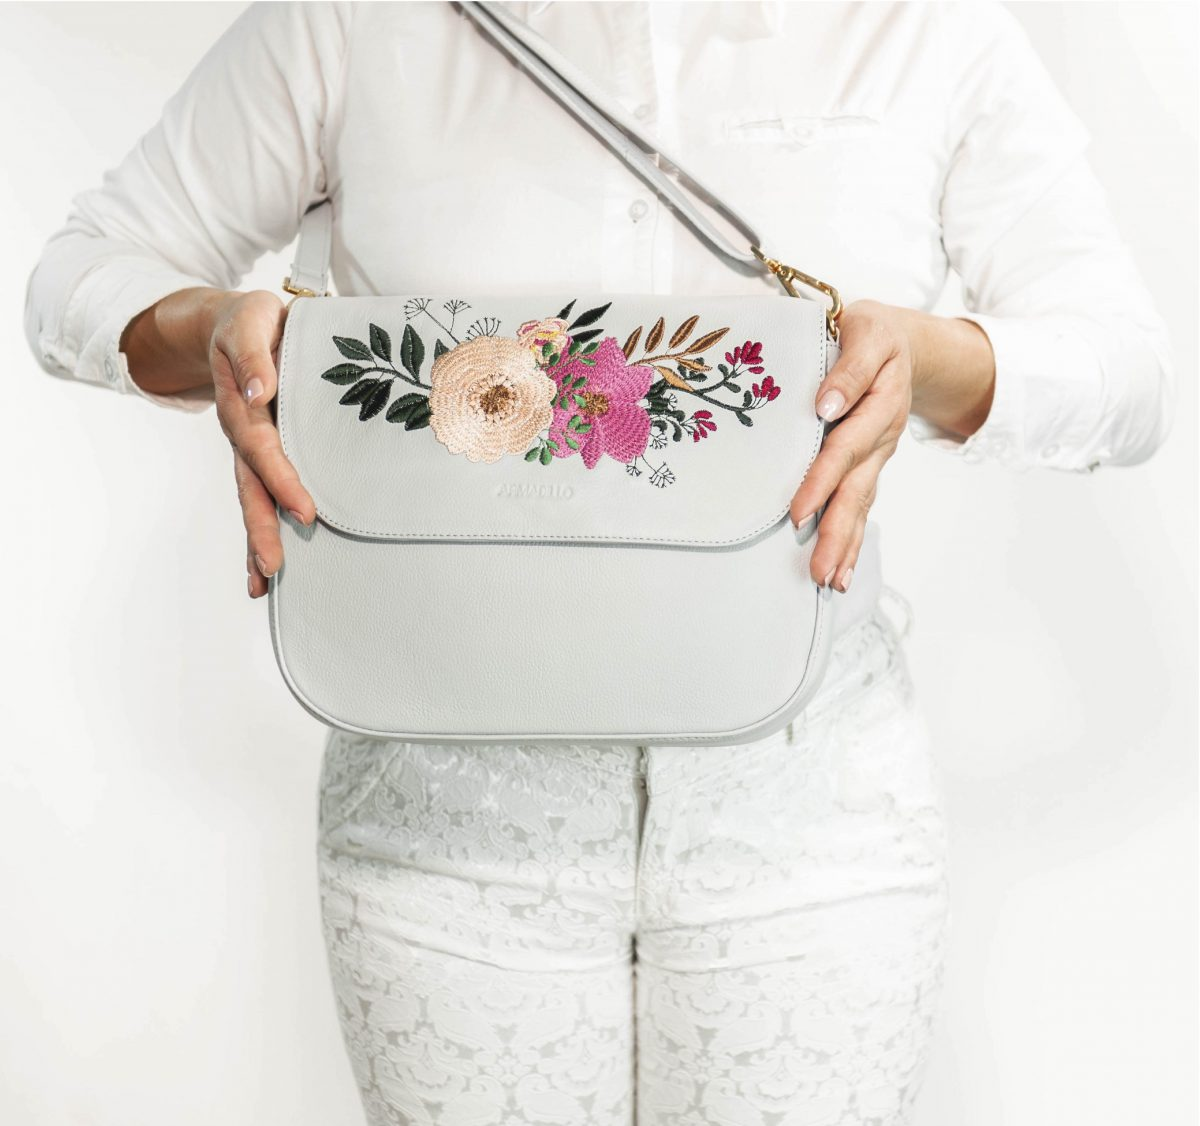 armadillo-leather-handbags-totes-wallets-clutches-backpack-small-leather-goods-accessories-office-travel-gifts-in-canada-nona-embroidery-flowers-grey-gray